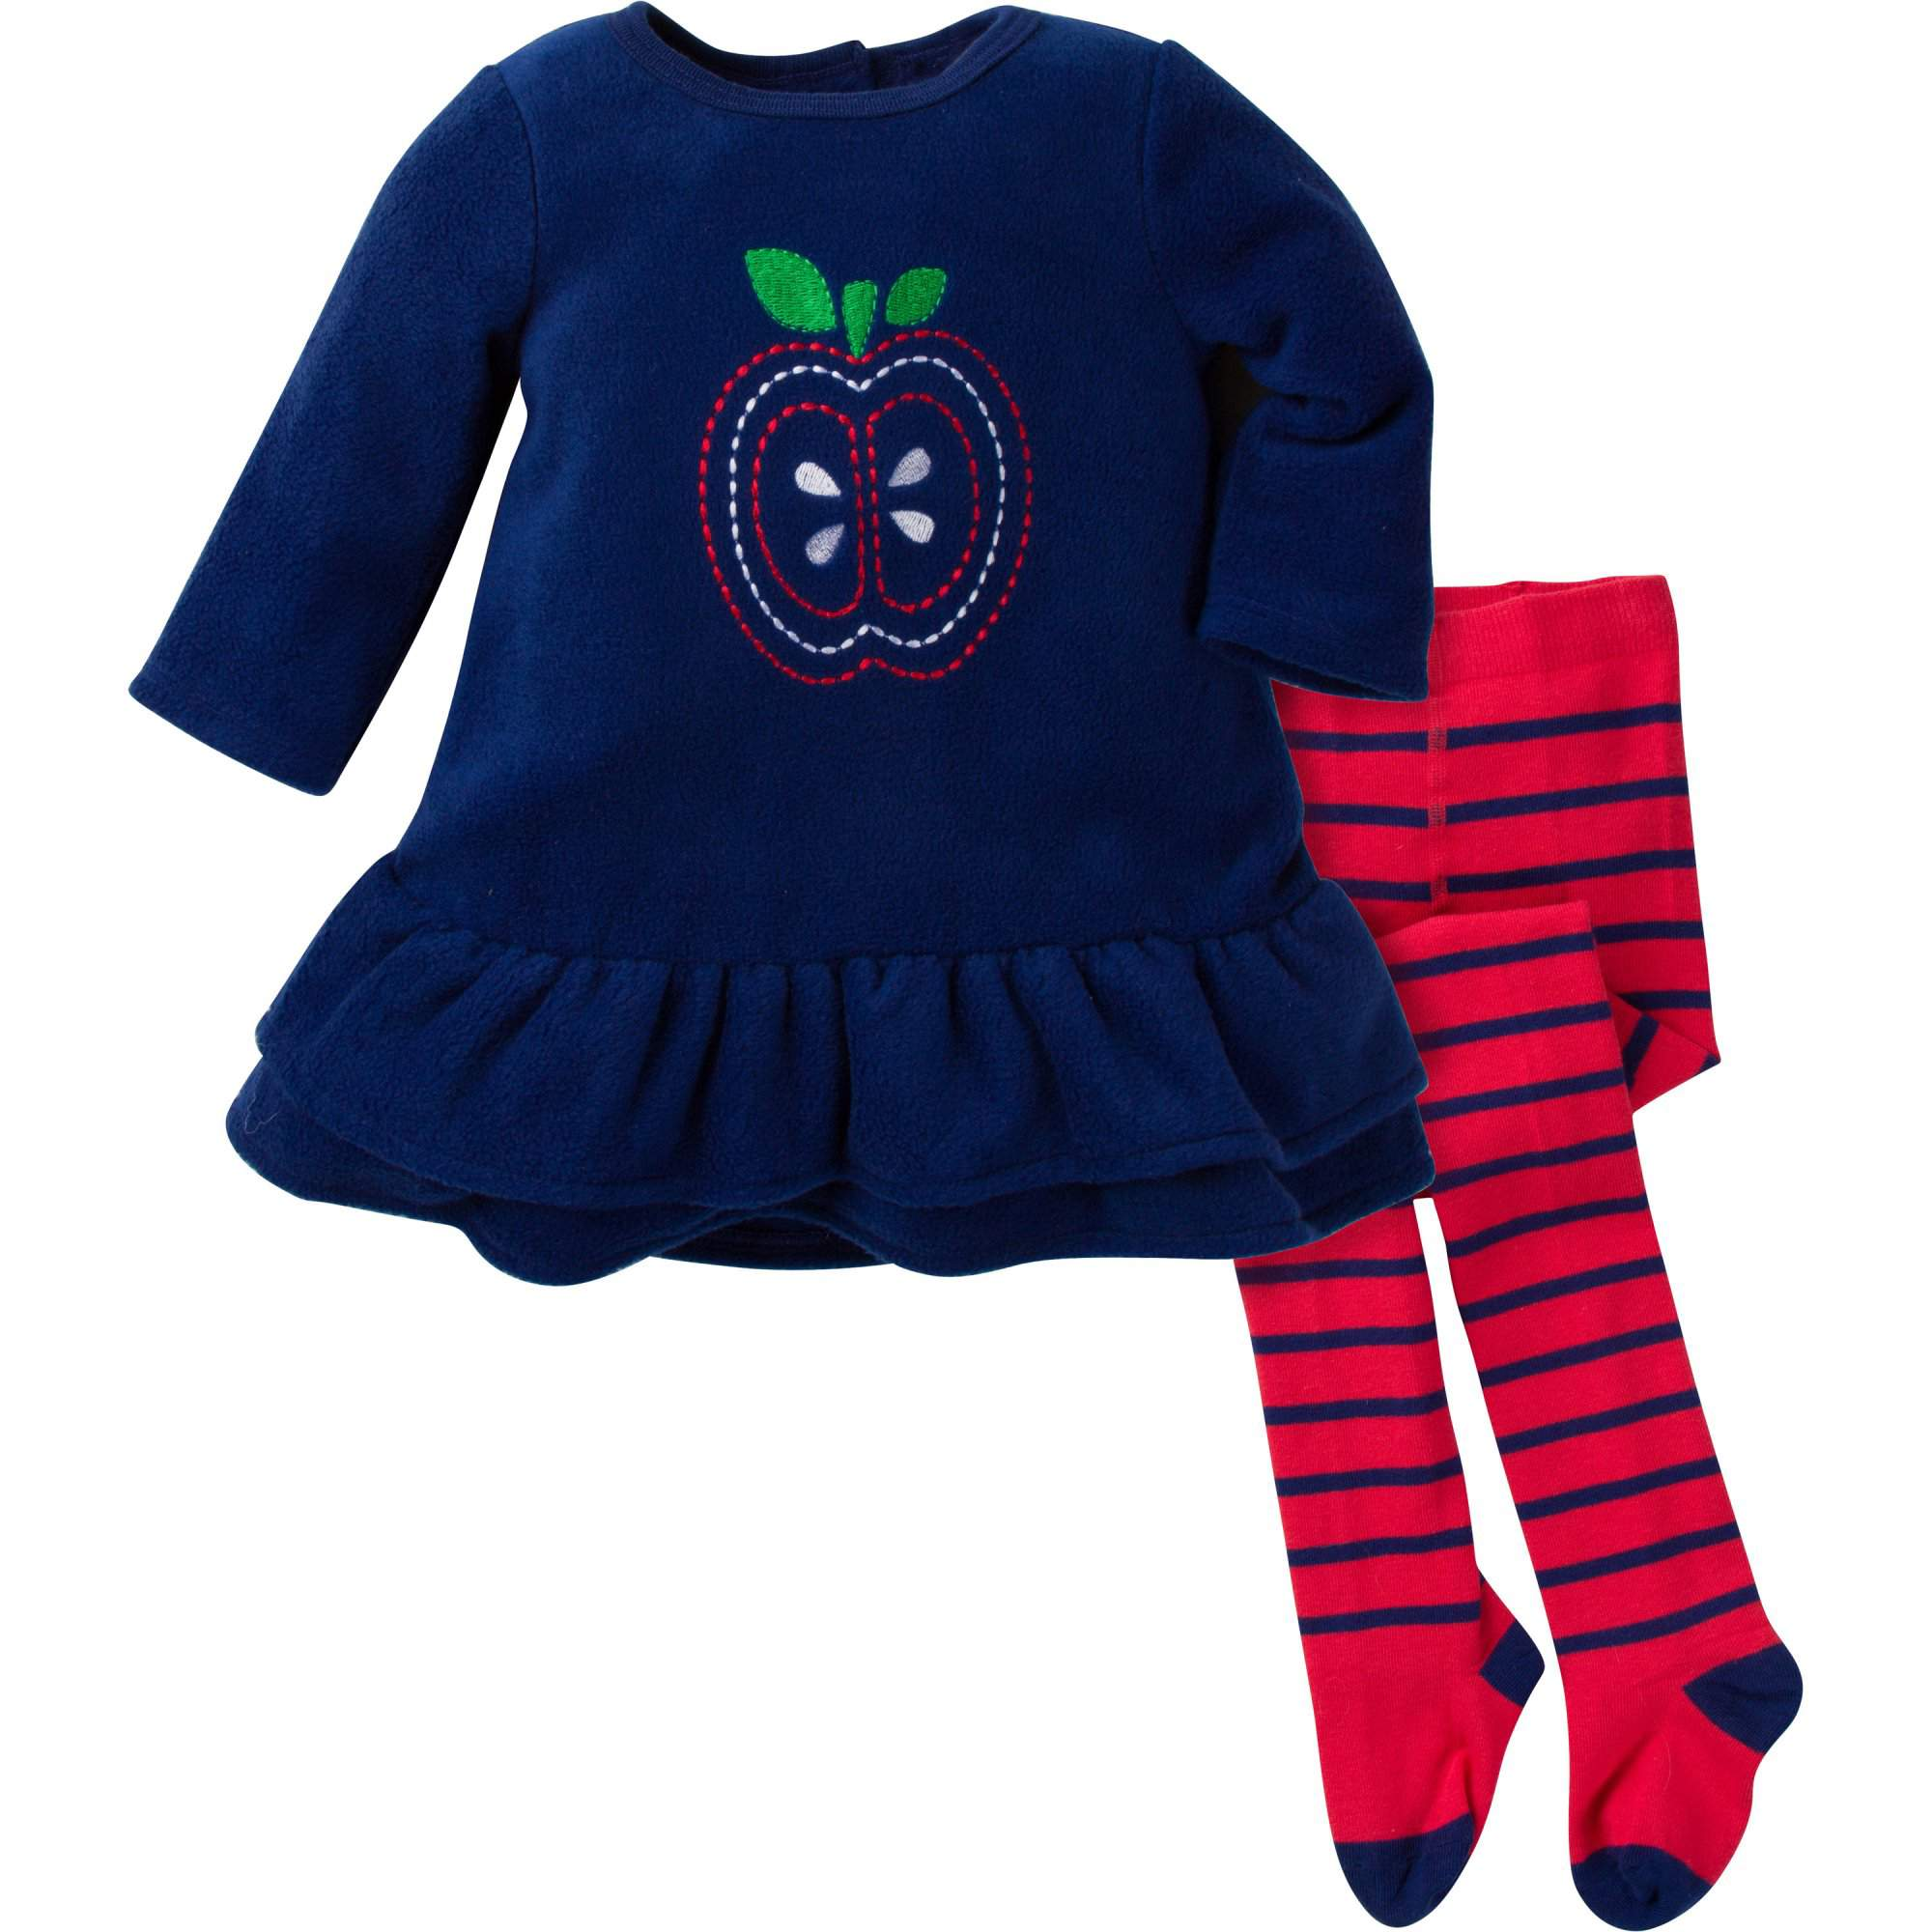 Gerber Baby Toddler Girl Fleece Dress with Tights 2pc Outfit Set